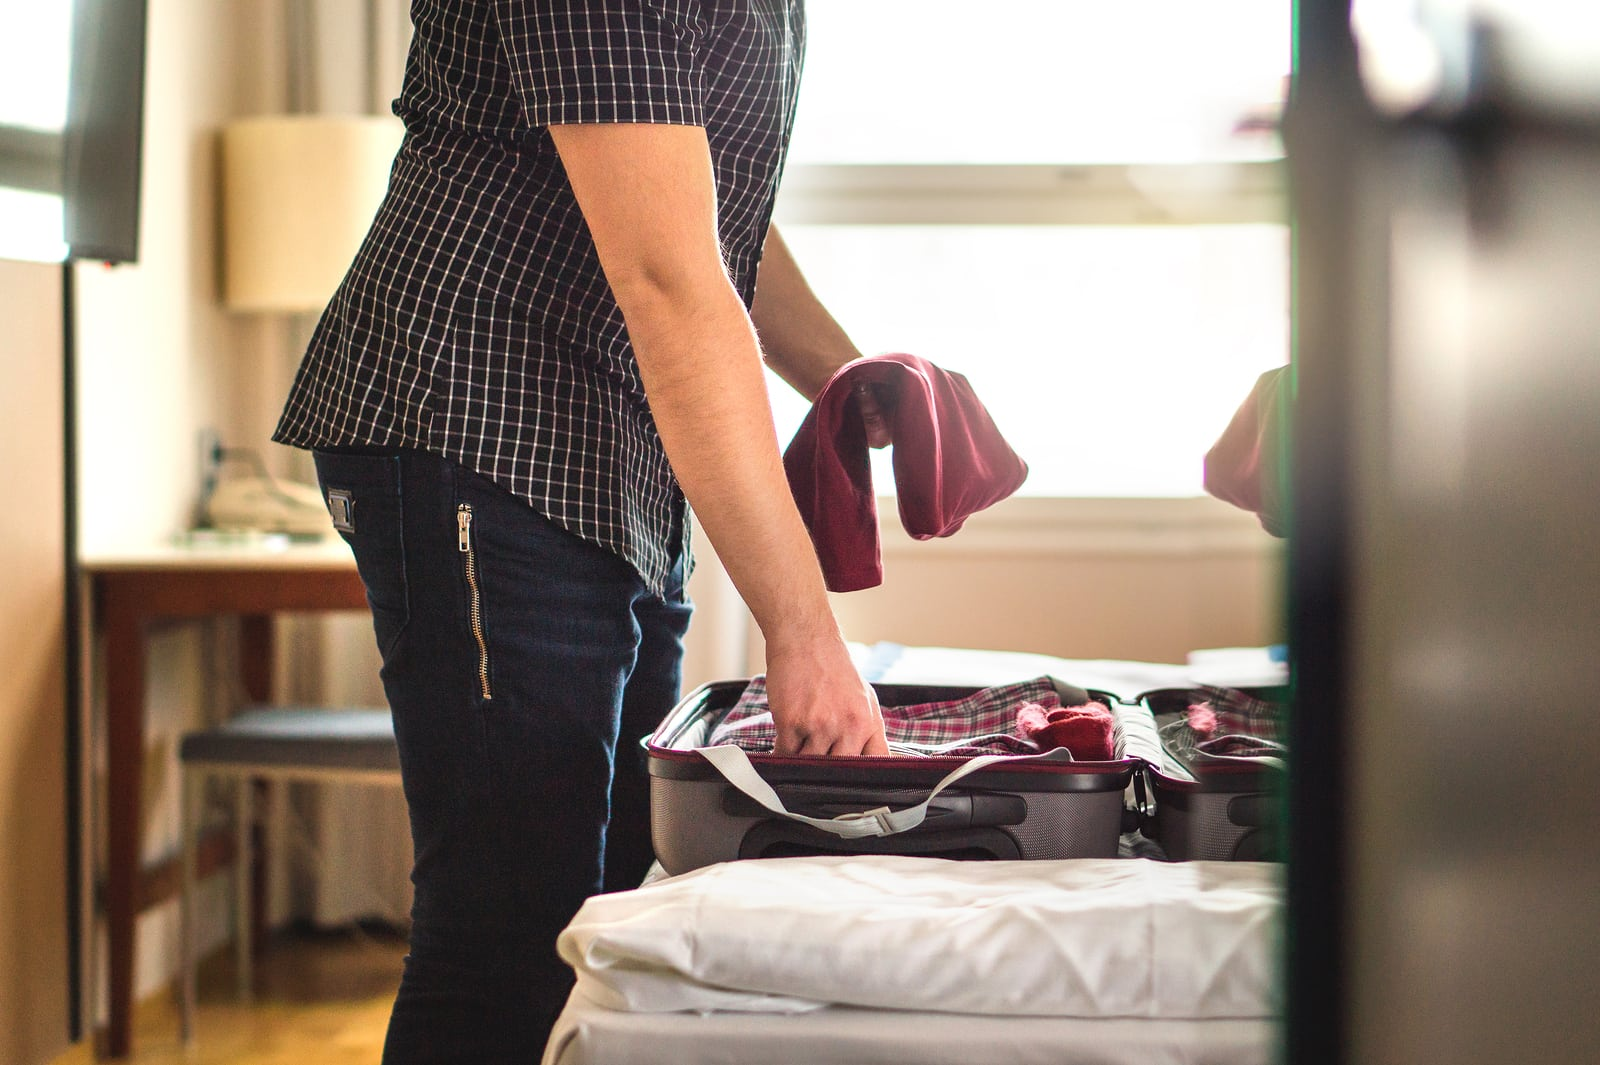 Man packing suitcase for vacation. Person putting clothes to baggagge in hotel room or home bedroom. Traveler with open luggage on bed. Holding t-shirt in hand. Going on or leaving from holiday.